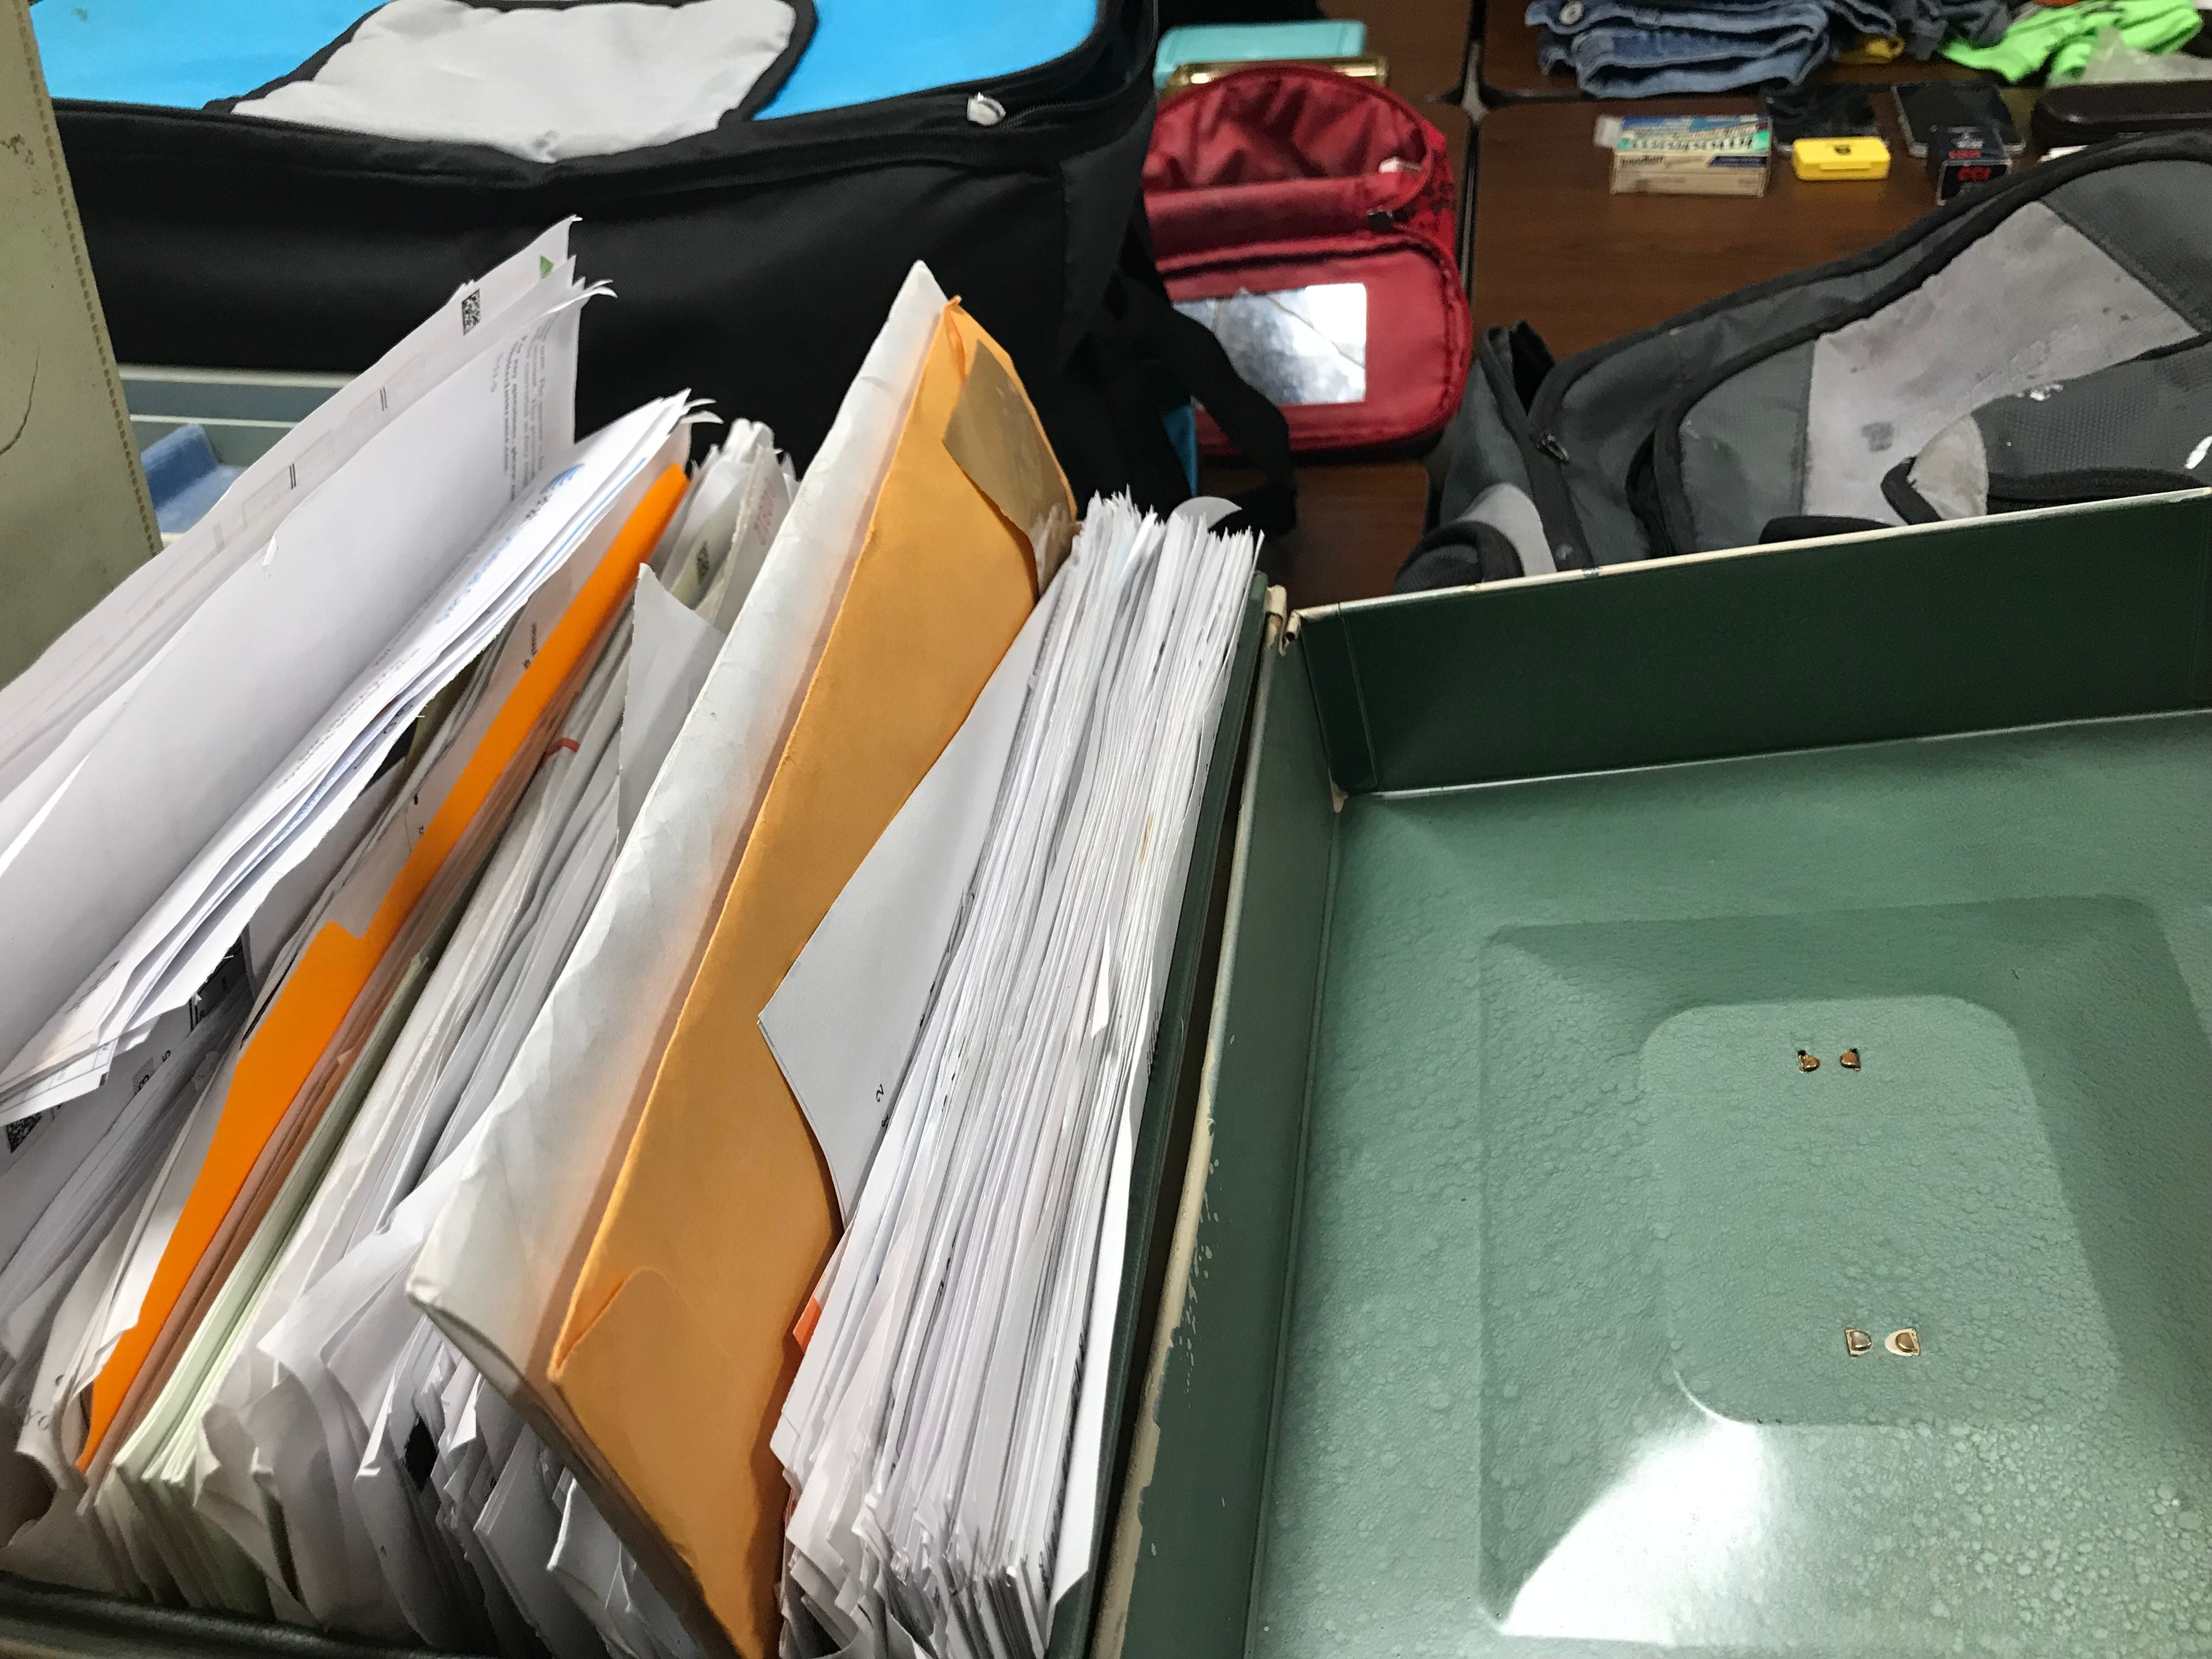 Personal files and sensitive paperwork were among hundreds of items Madison County Sheriff's Office recovered from a theft ring believed to be targeting grieving families and others throughout West Tennessee.